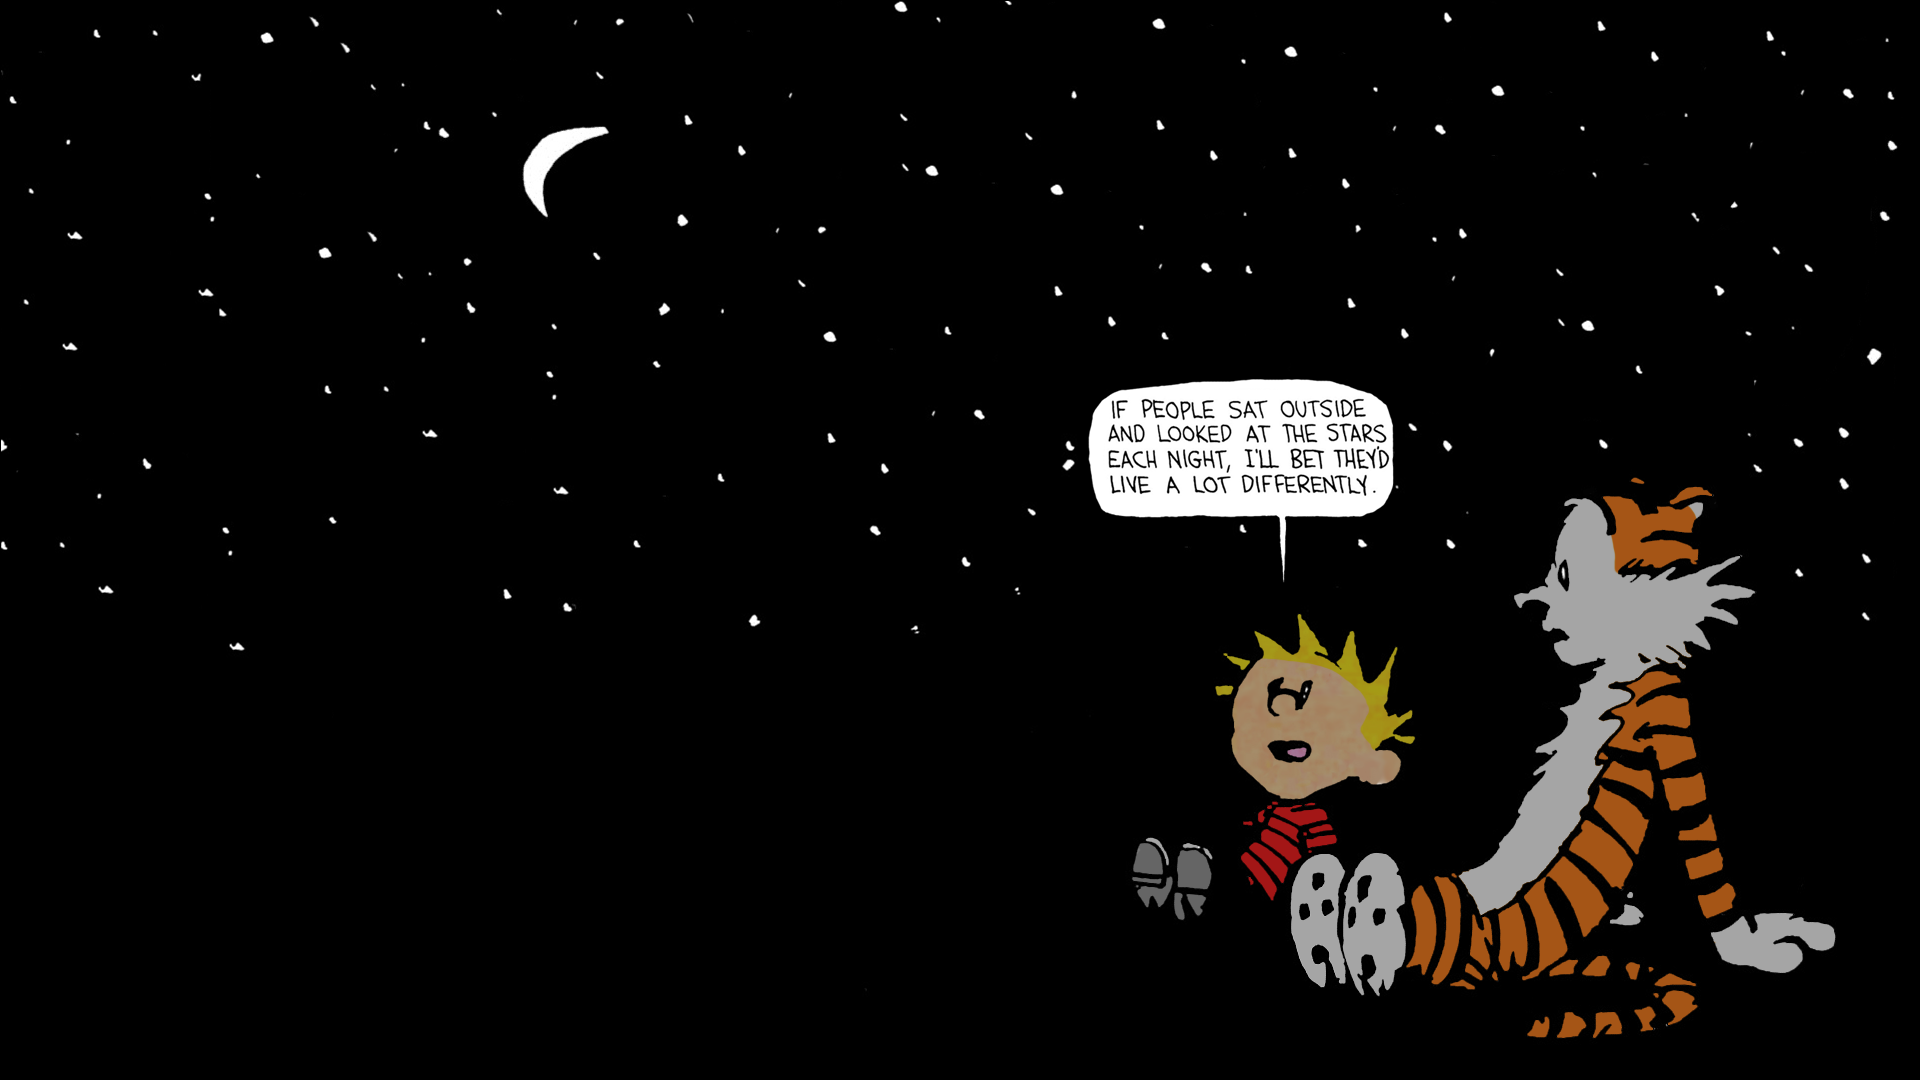 Top Collection Phone And Desktop Wallpaper Hd In 2020 Calvin And Hobbes Wallpaper Calvin And Hobbes Quotes Calvin And Hobbes